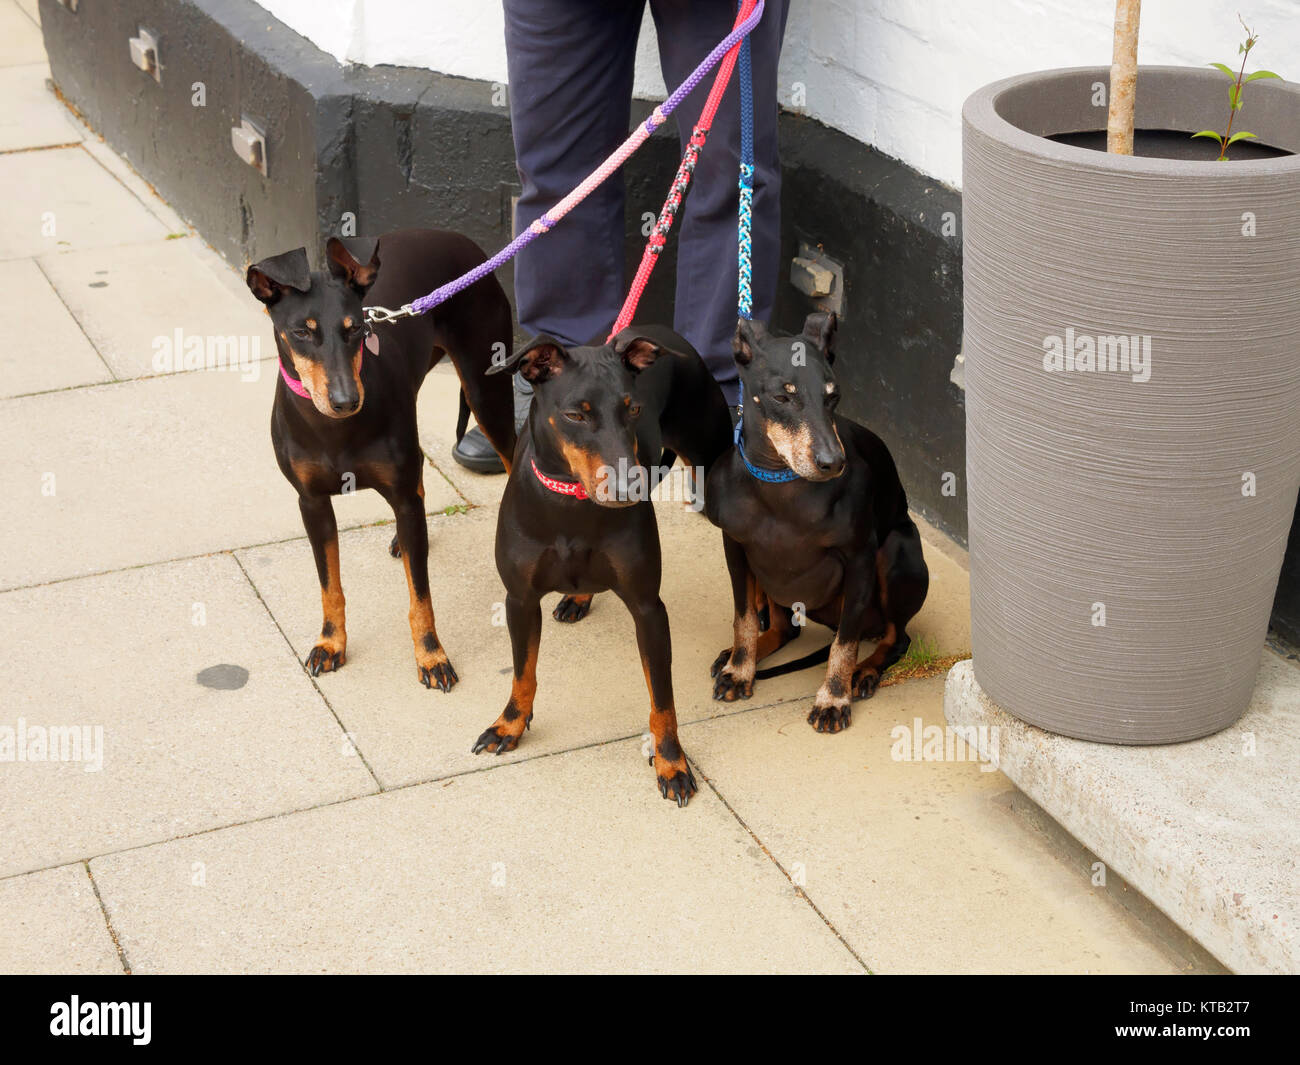 Three Miniature Pinscher dogs out for a walk - Stock Image